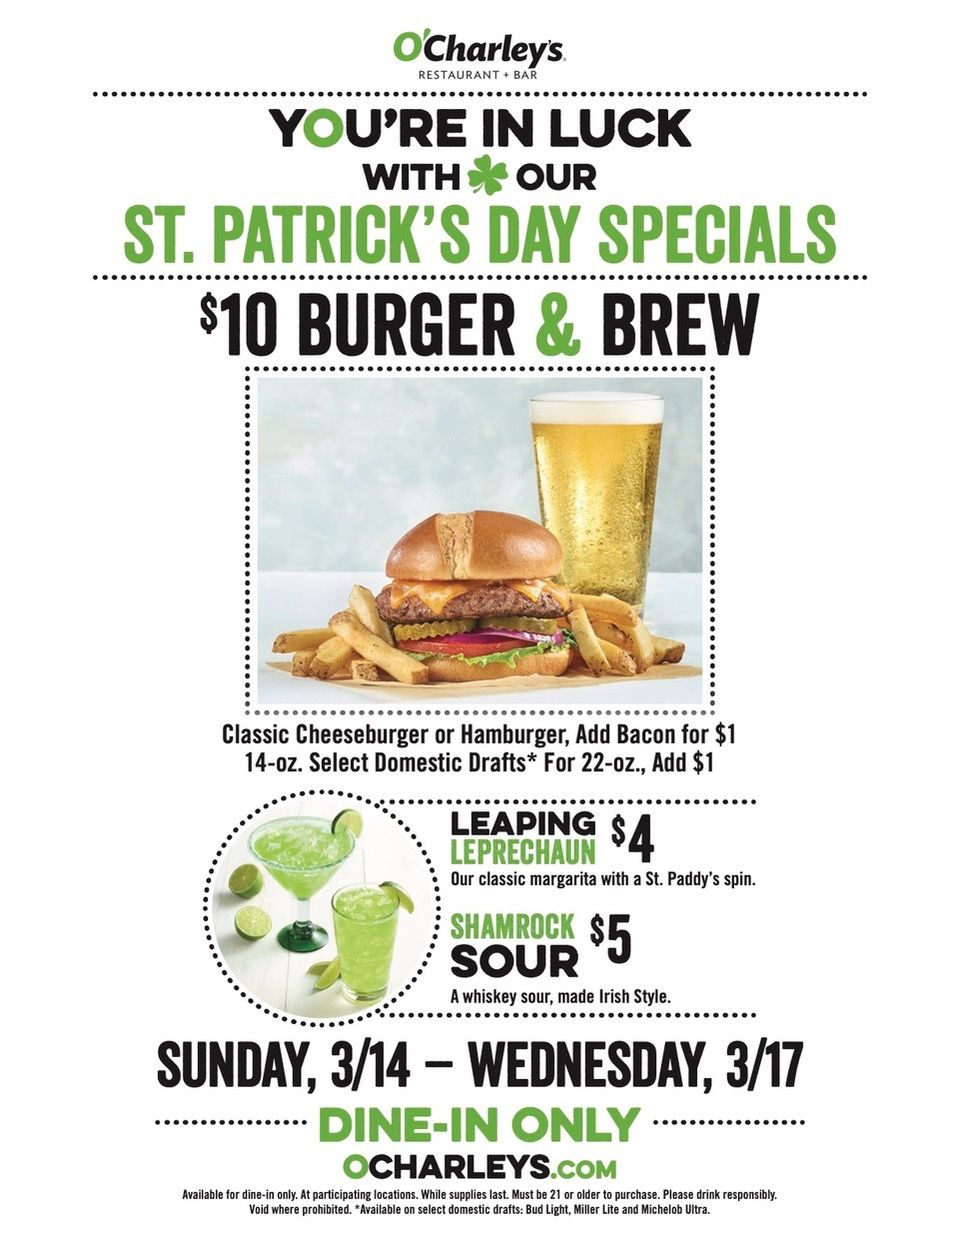 O'Charley's Announces St. Patrick's Day Burger & Brew Special